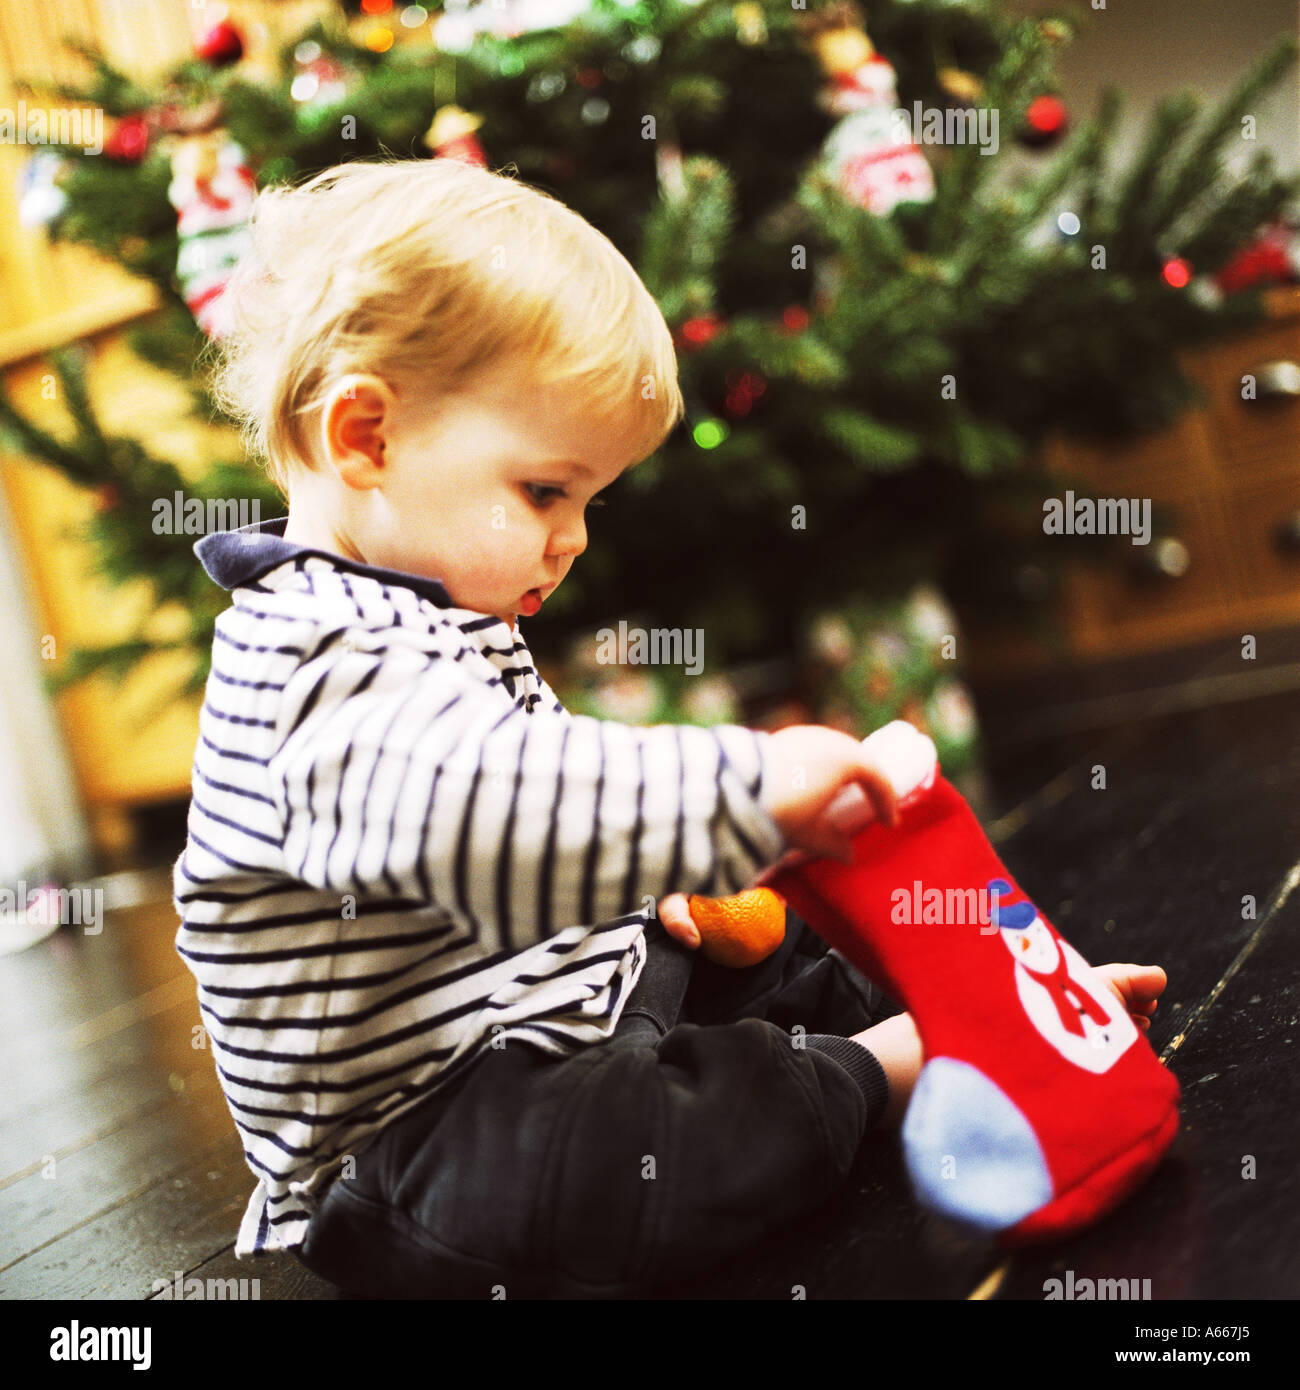 A small child looking in a Christmas stocking - Stock Image